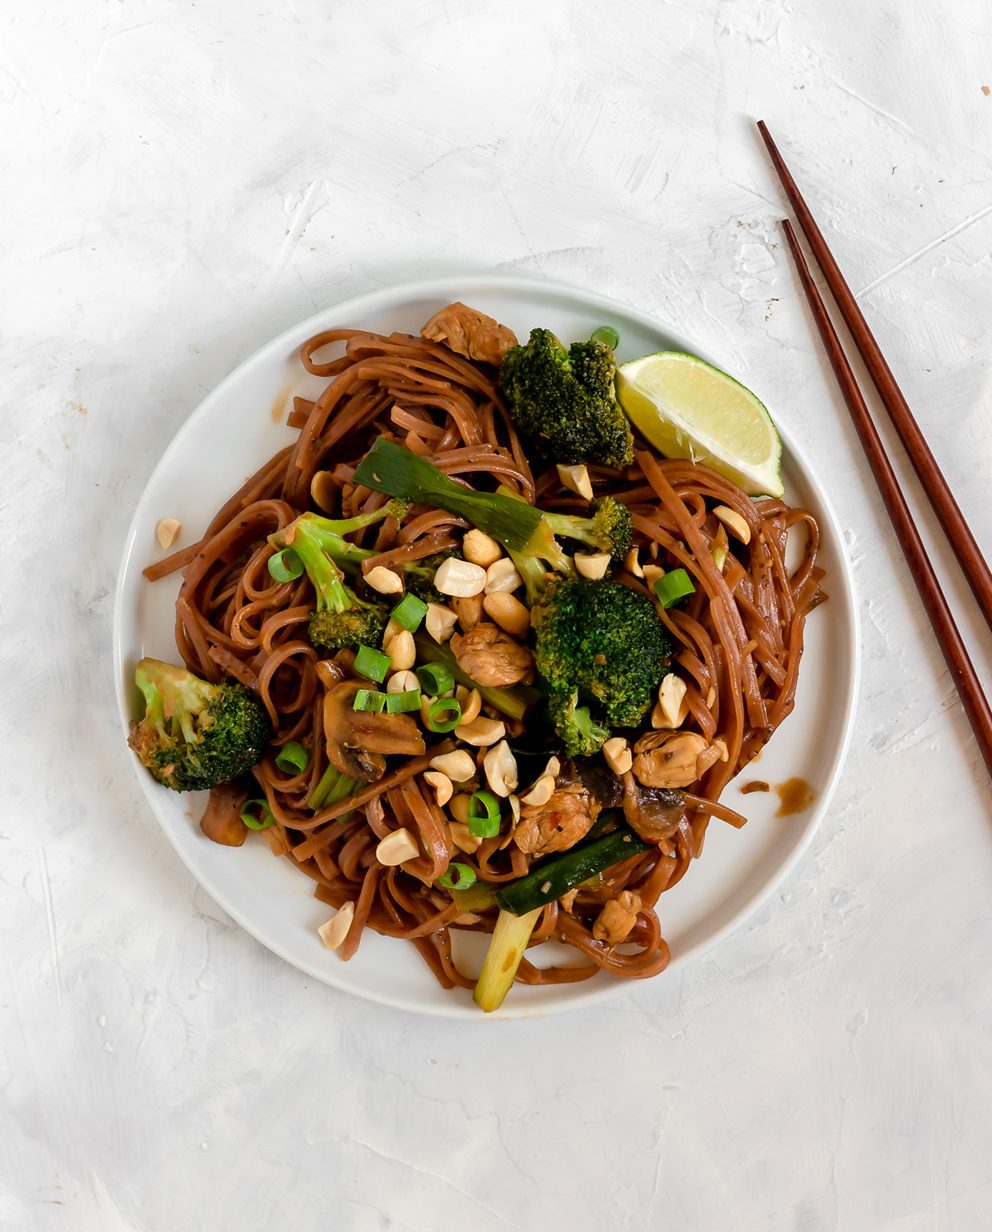 @bakedambrosia's cover photo for '20 Minute Spicy Thai Noodles (gluten free, dairy free) - Baked Ambrosia'